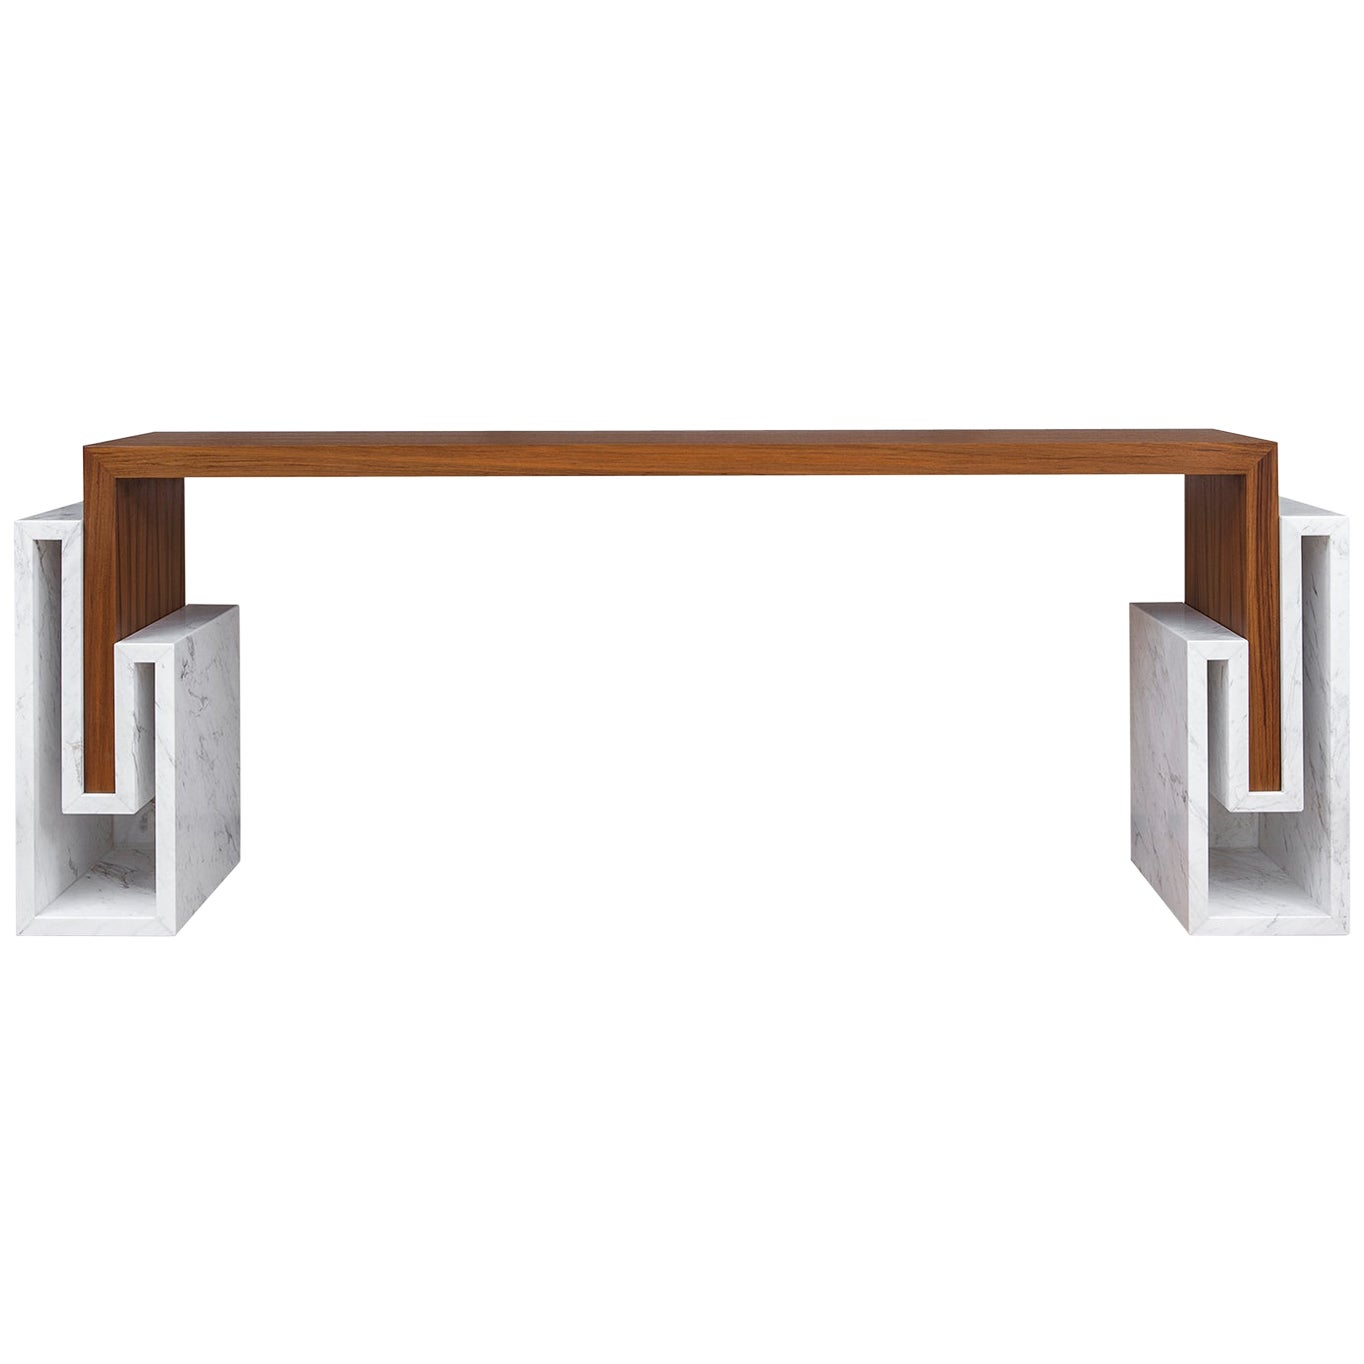 """Contemporary Handcrafted Console """"Alke"""" in Wood with Brass Pedestals by Anaktae"""